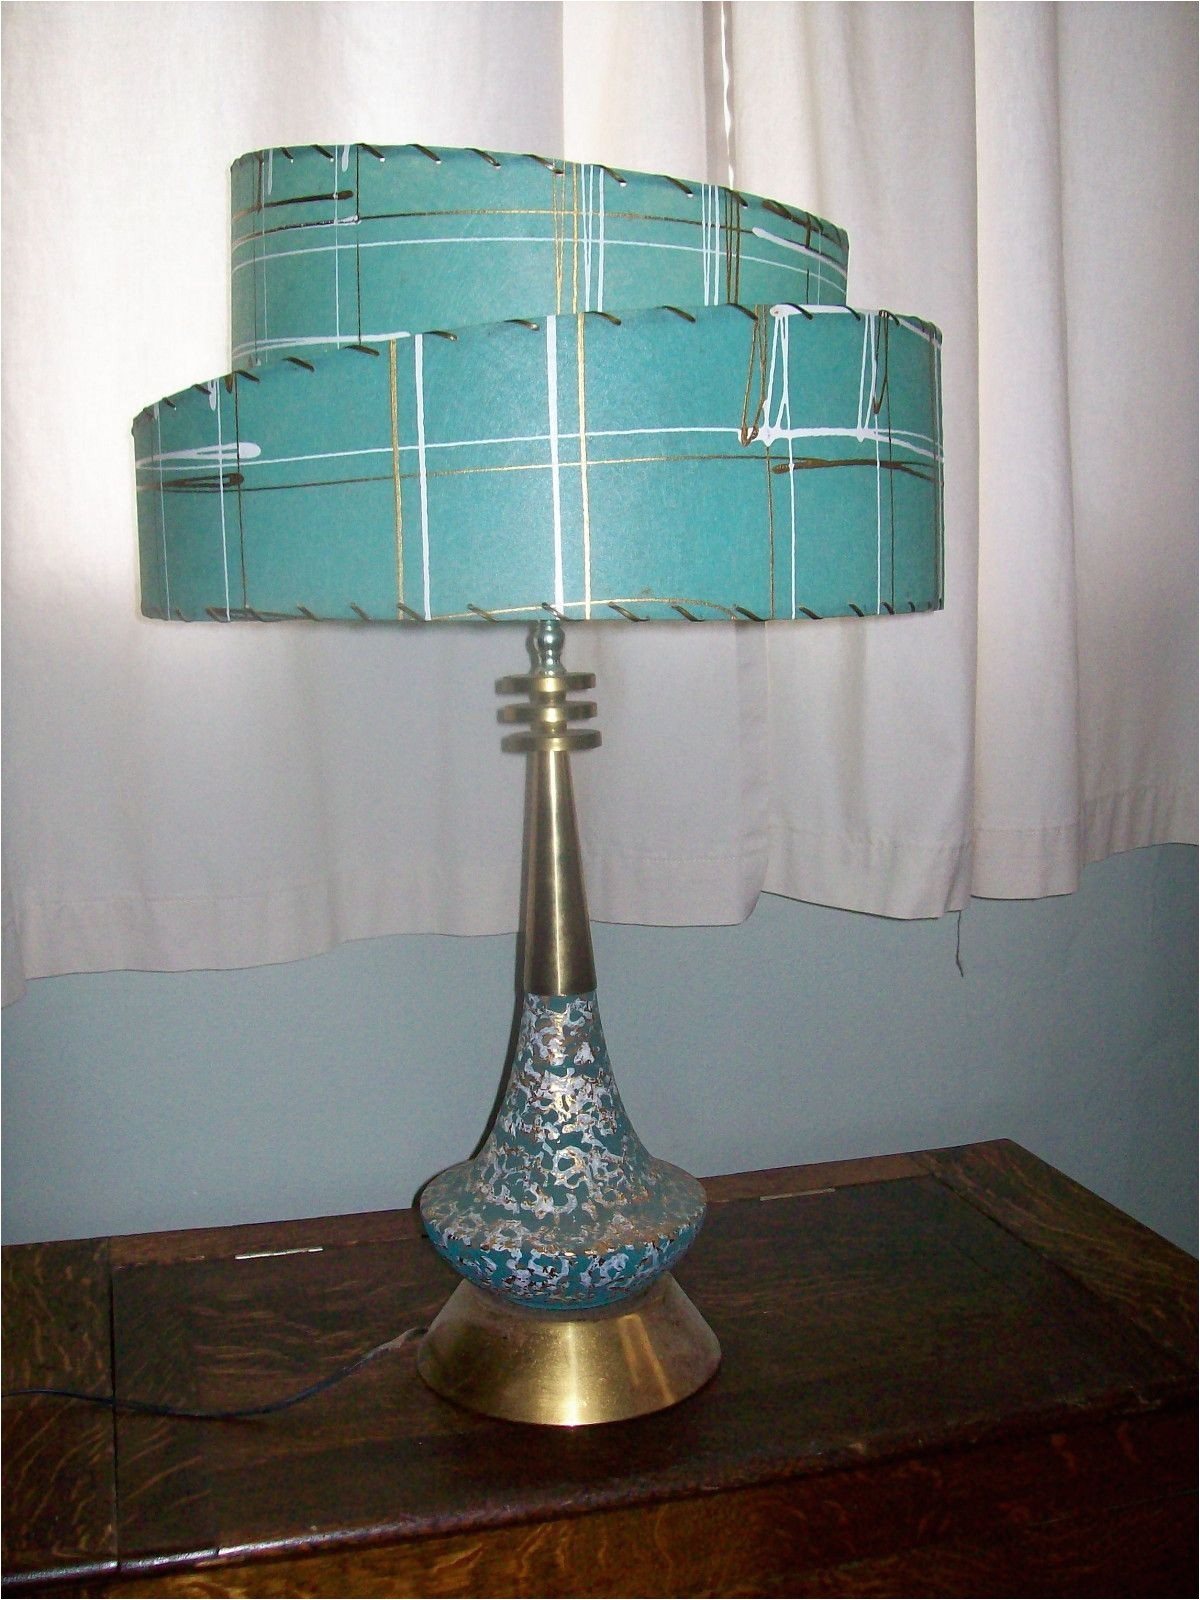 what a glorious teal gold and white mid century modern lamp with matching two tier fiberglass lampshade